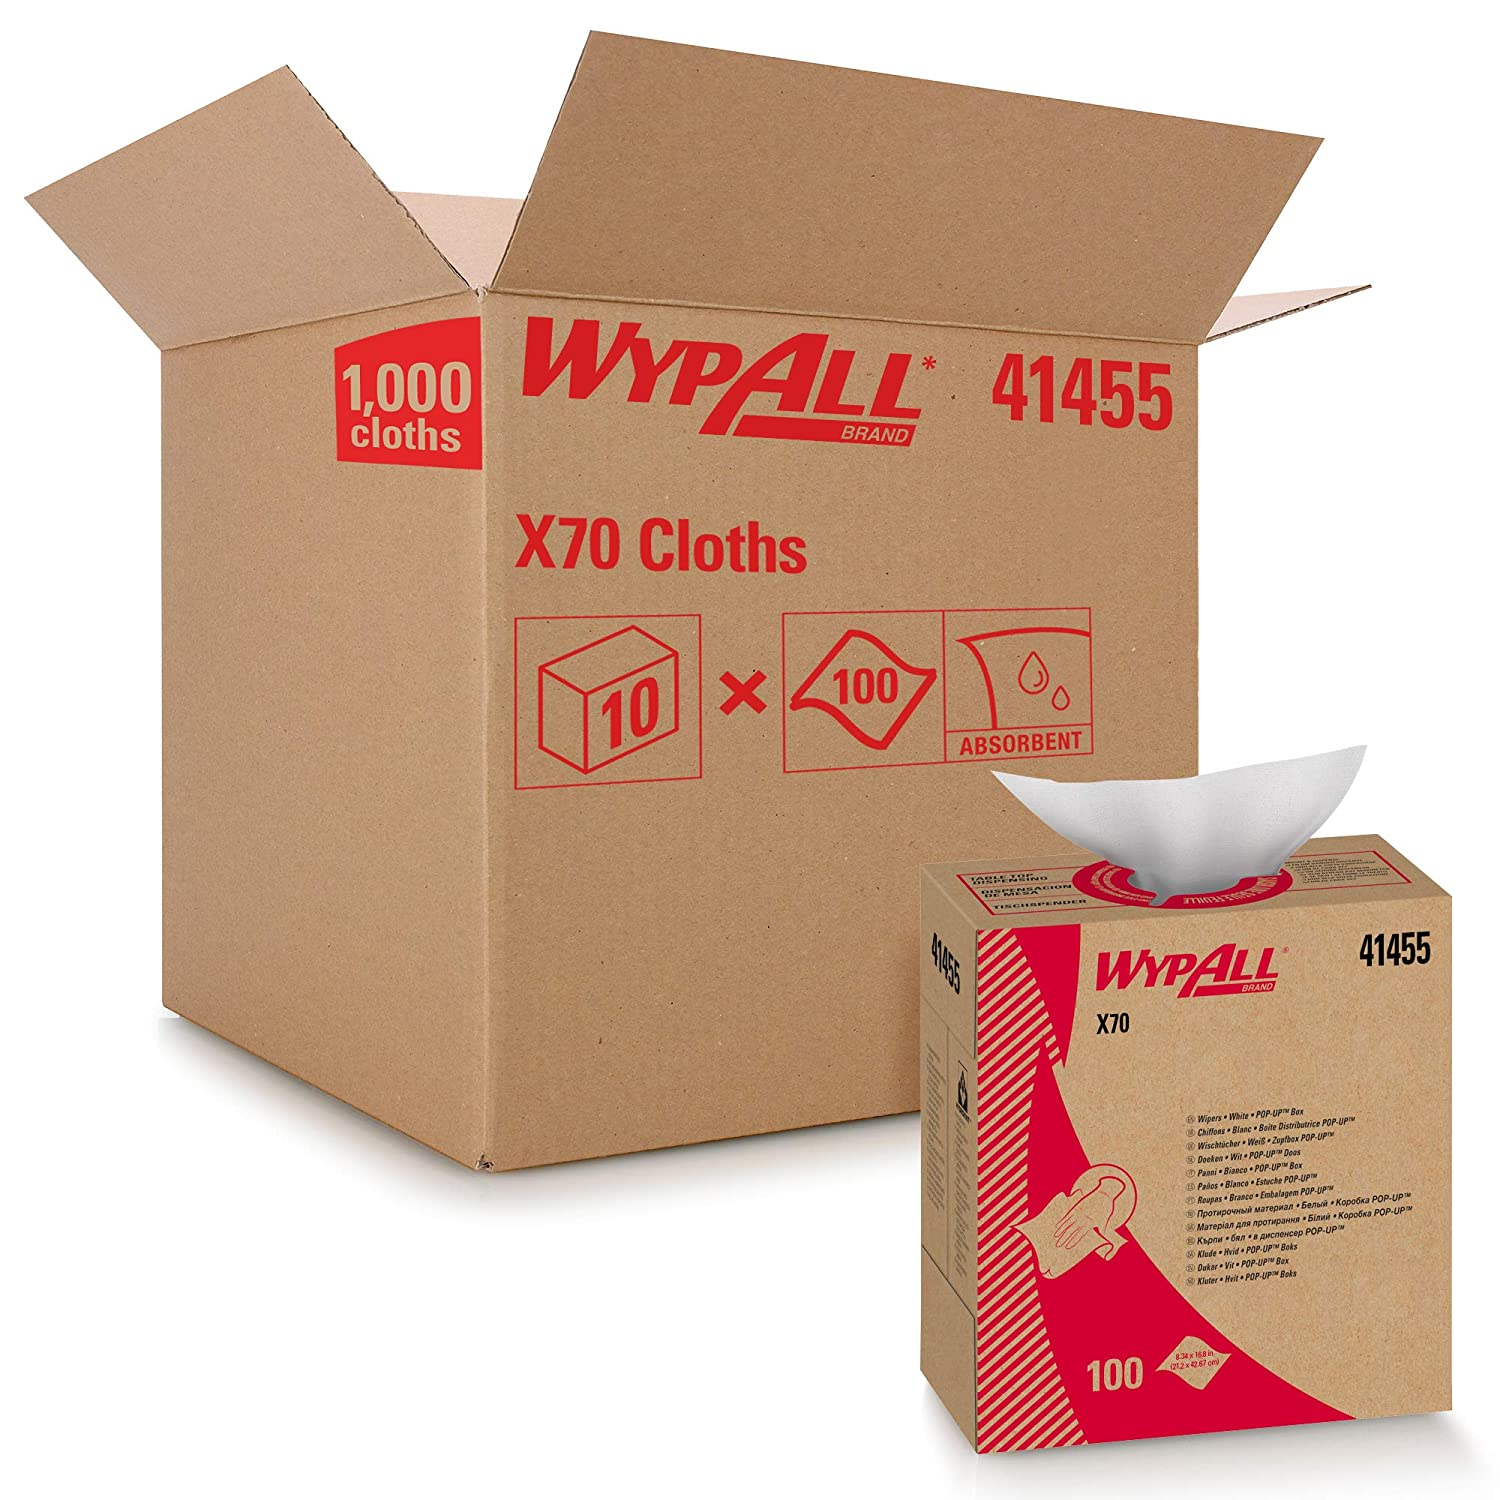 WypAll X70 Extended Use Reusable Whit Cloths 41455 Box Columbus Nippon regular agency Mall Pop-Up